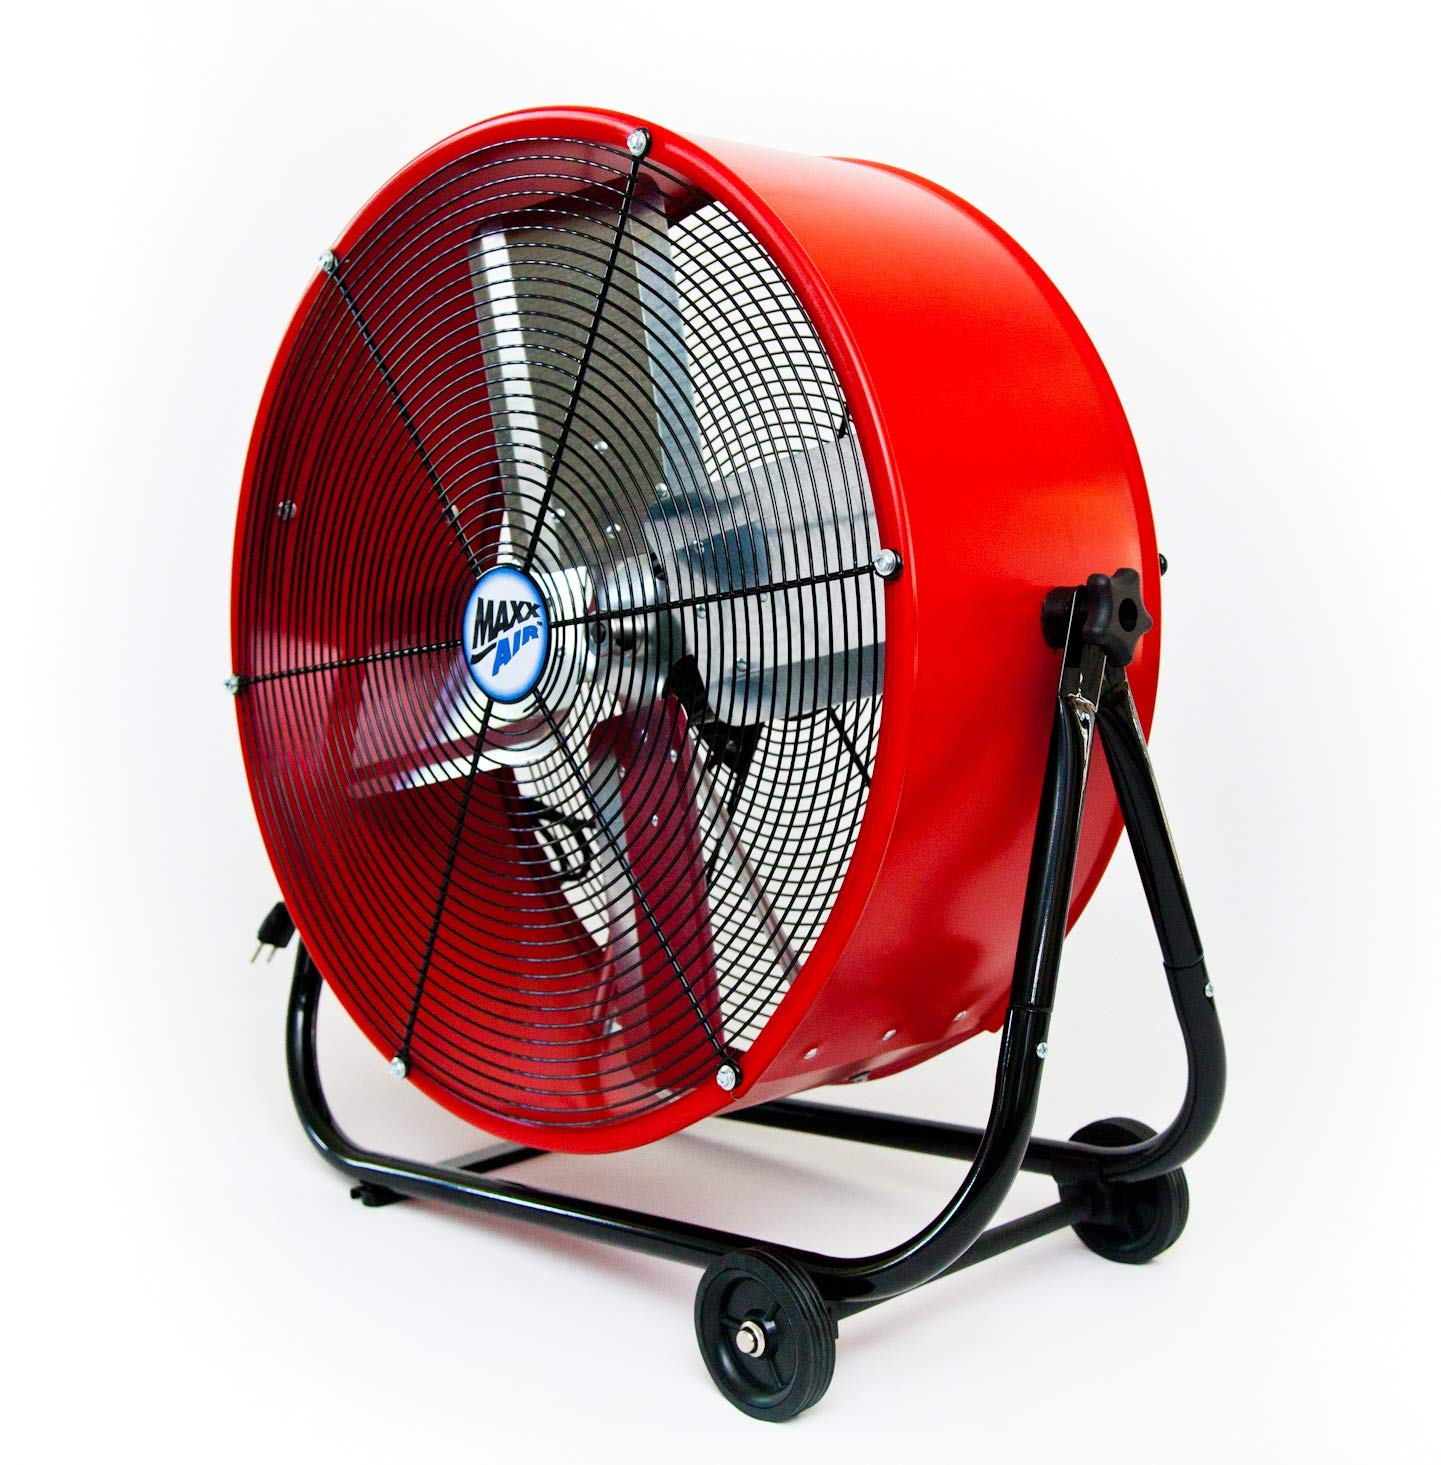 Maxx Air   Industrial Grade Air Circulator for Garage, Shop, Patio, Barn Use   BF24TFREDUPS 24-Inch High Velocity Drum Fan, Two-Speed, Red